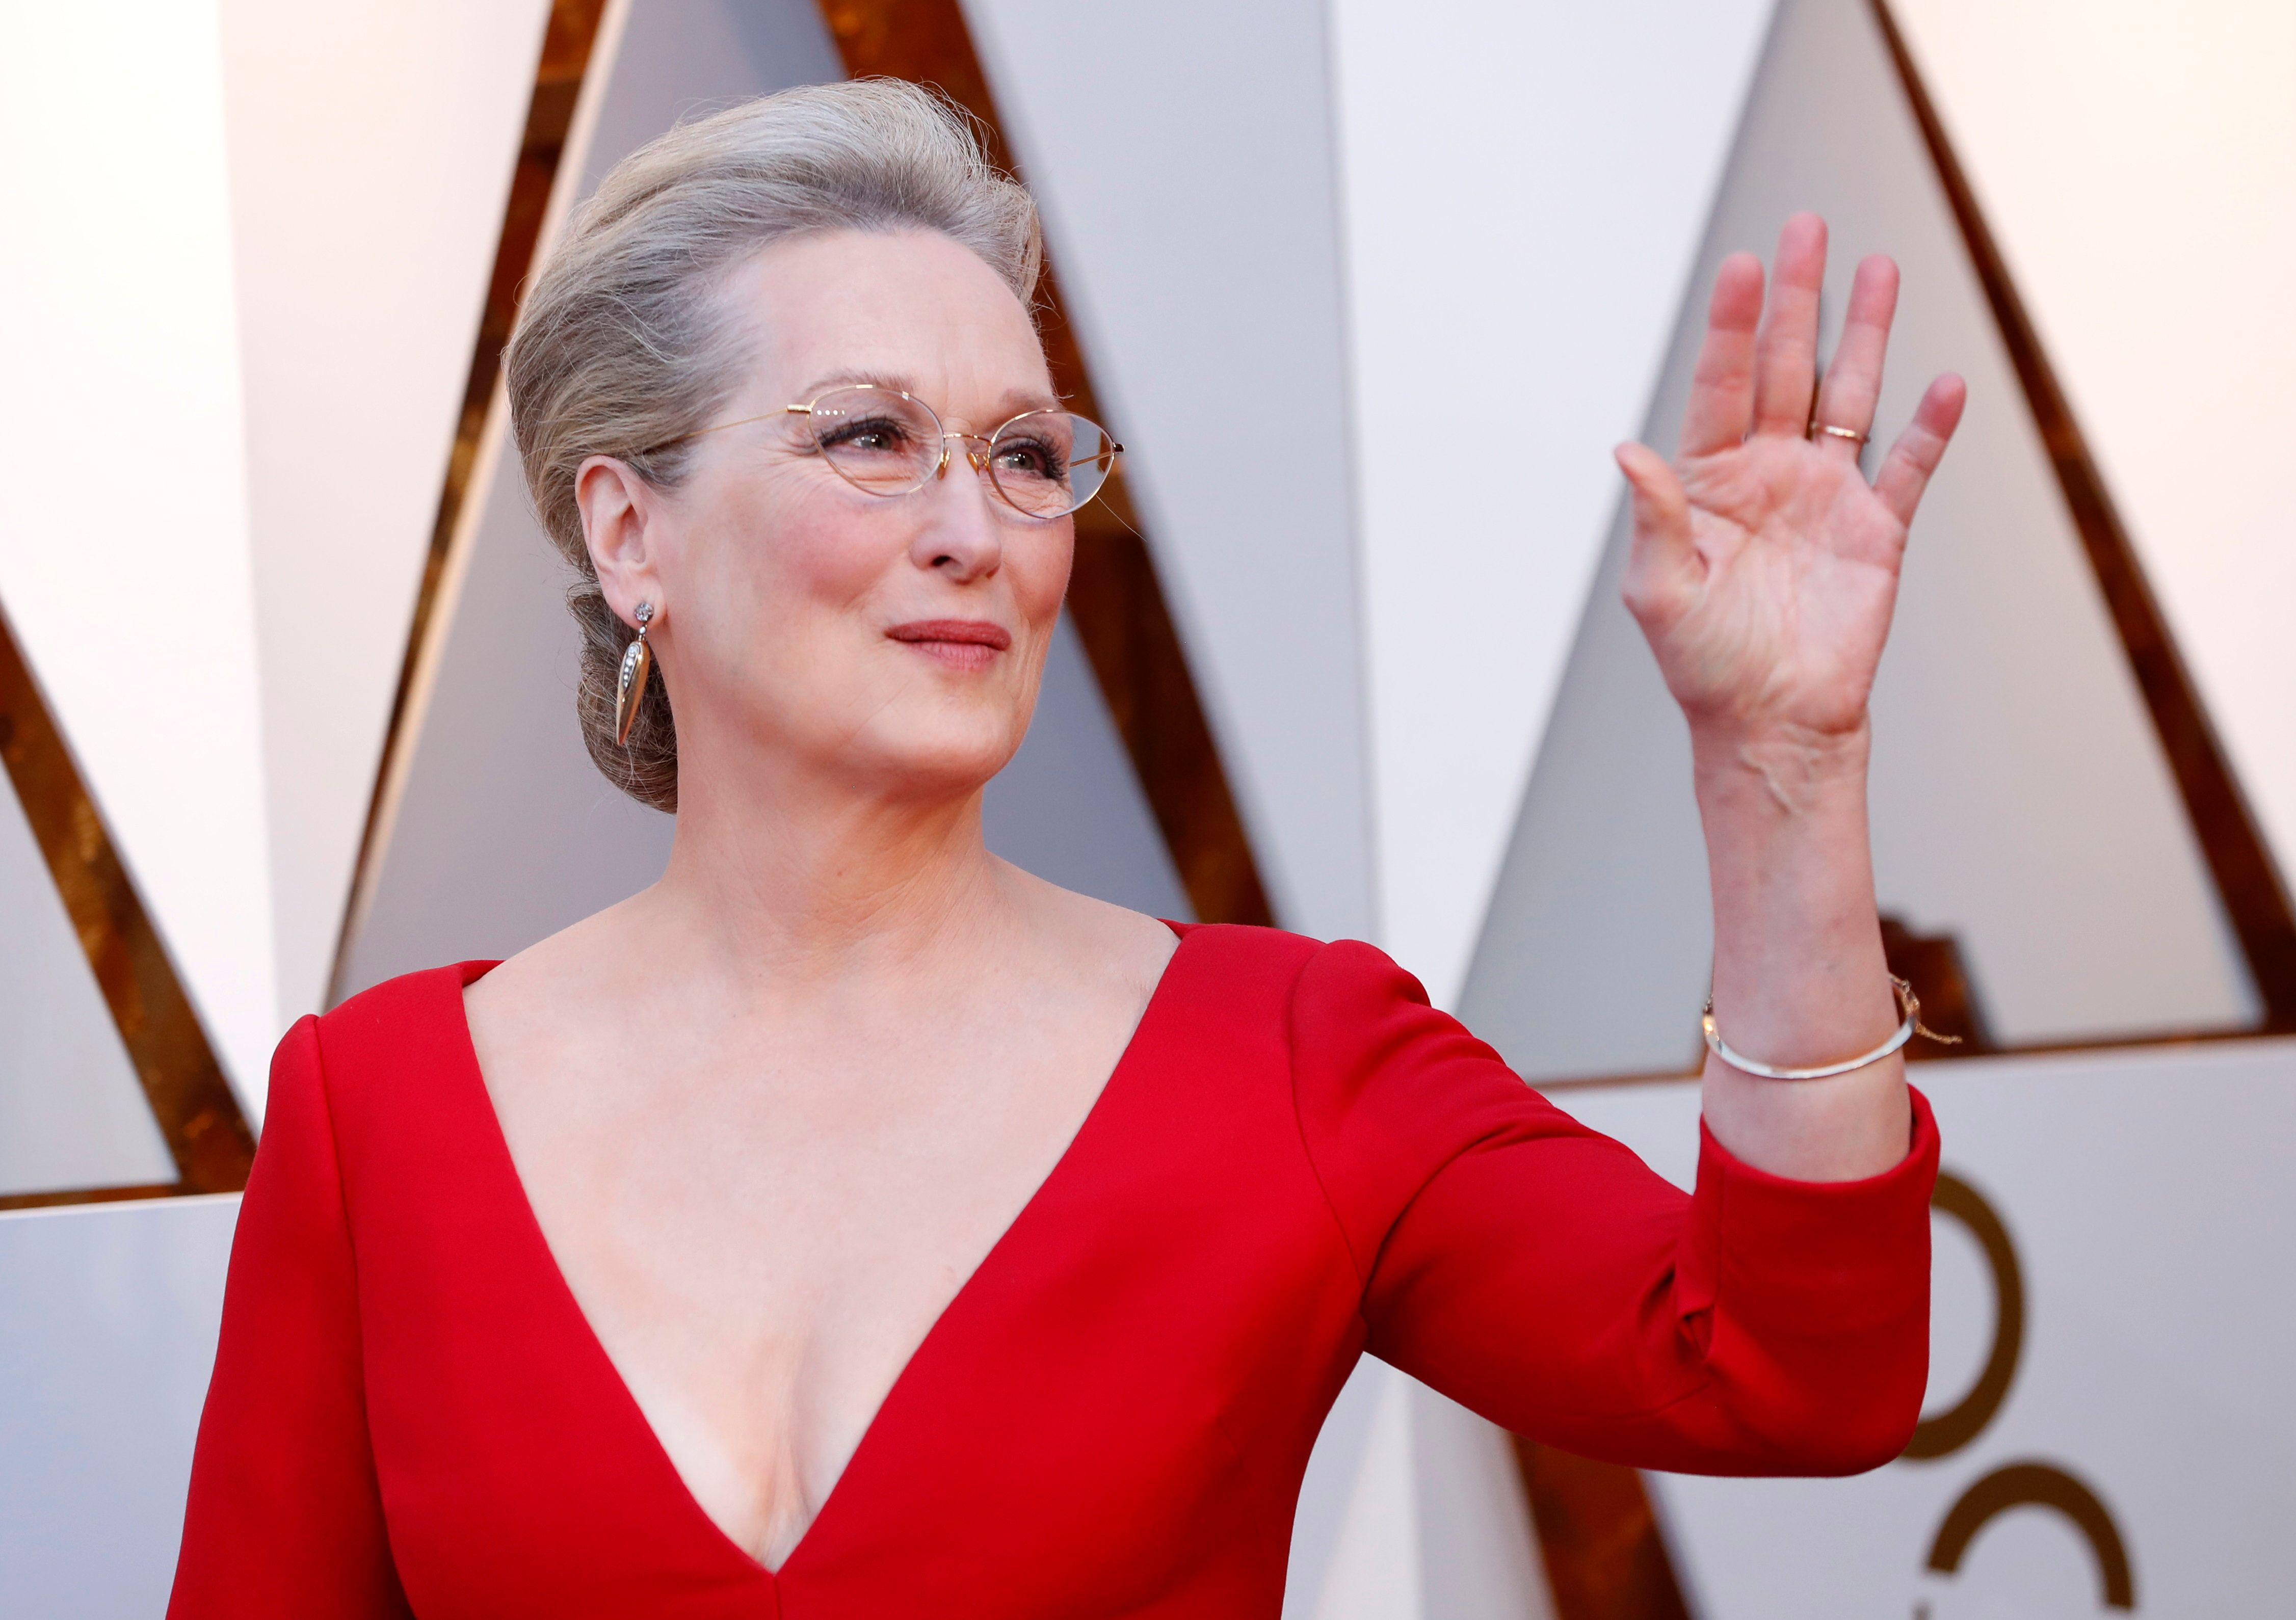 90th Academy Awards - Oscars Arrivals - Hollywood, California, U.S., 04/03/2018 - Meryl Streep REUTERS/Mario Anzuoni